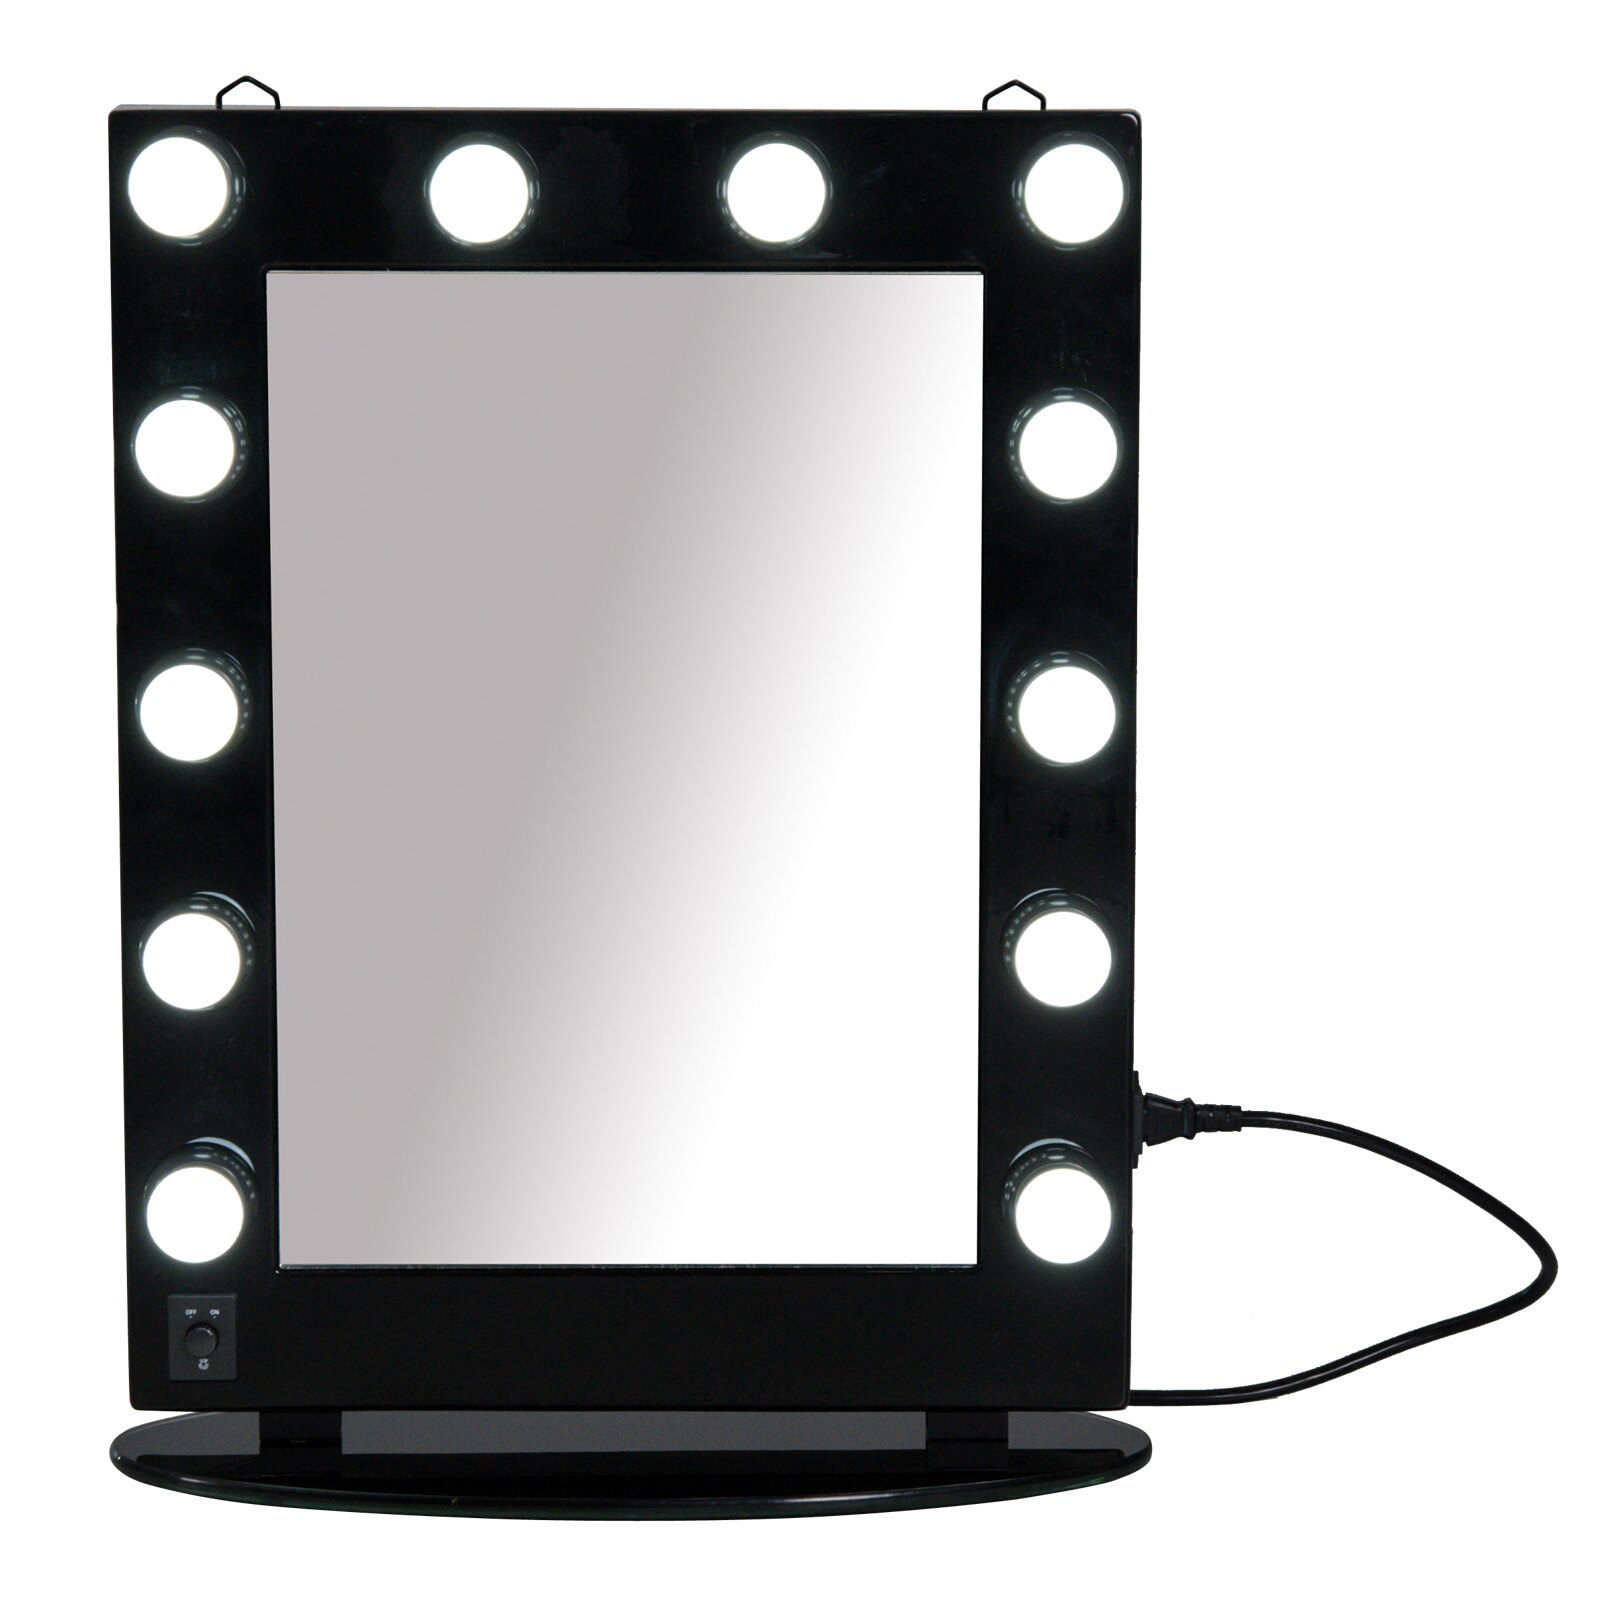 Delicious Hollywood Style Led Vanity Mirror Lights Kit With Dimmable Light 10 Bulbs For Vanity Mirror Makeup Vanity Table Set In Dressing Selected Material Lamps & Shades